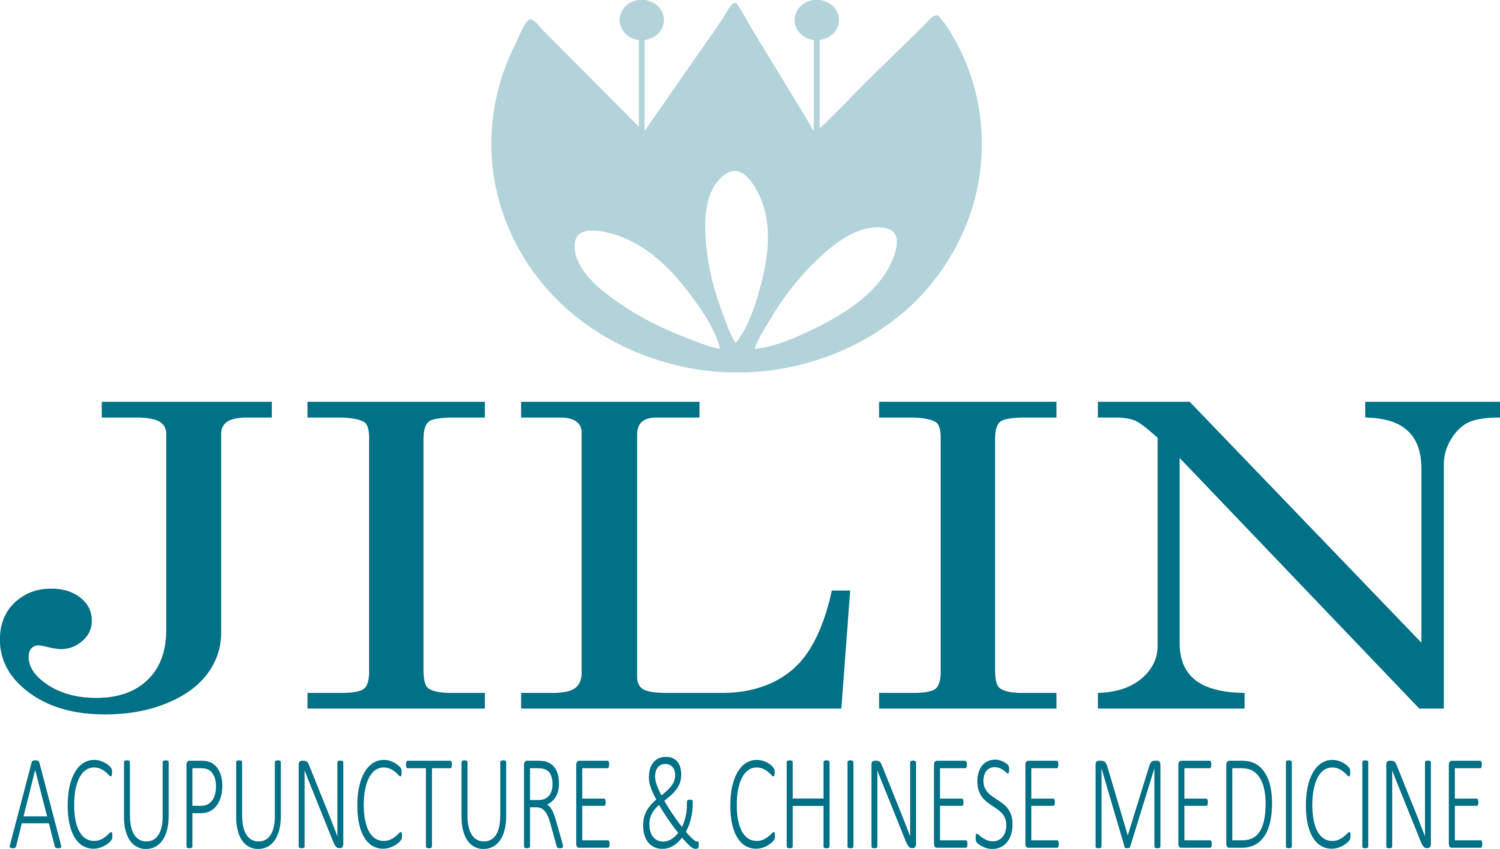 Jilin Acupuncture & Chinese Medicine